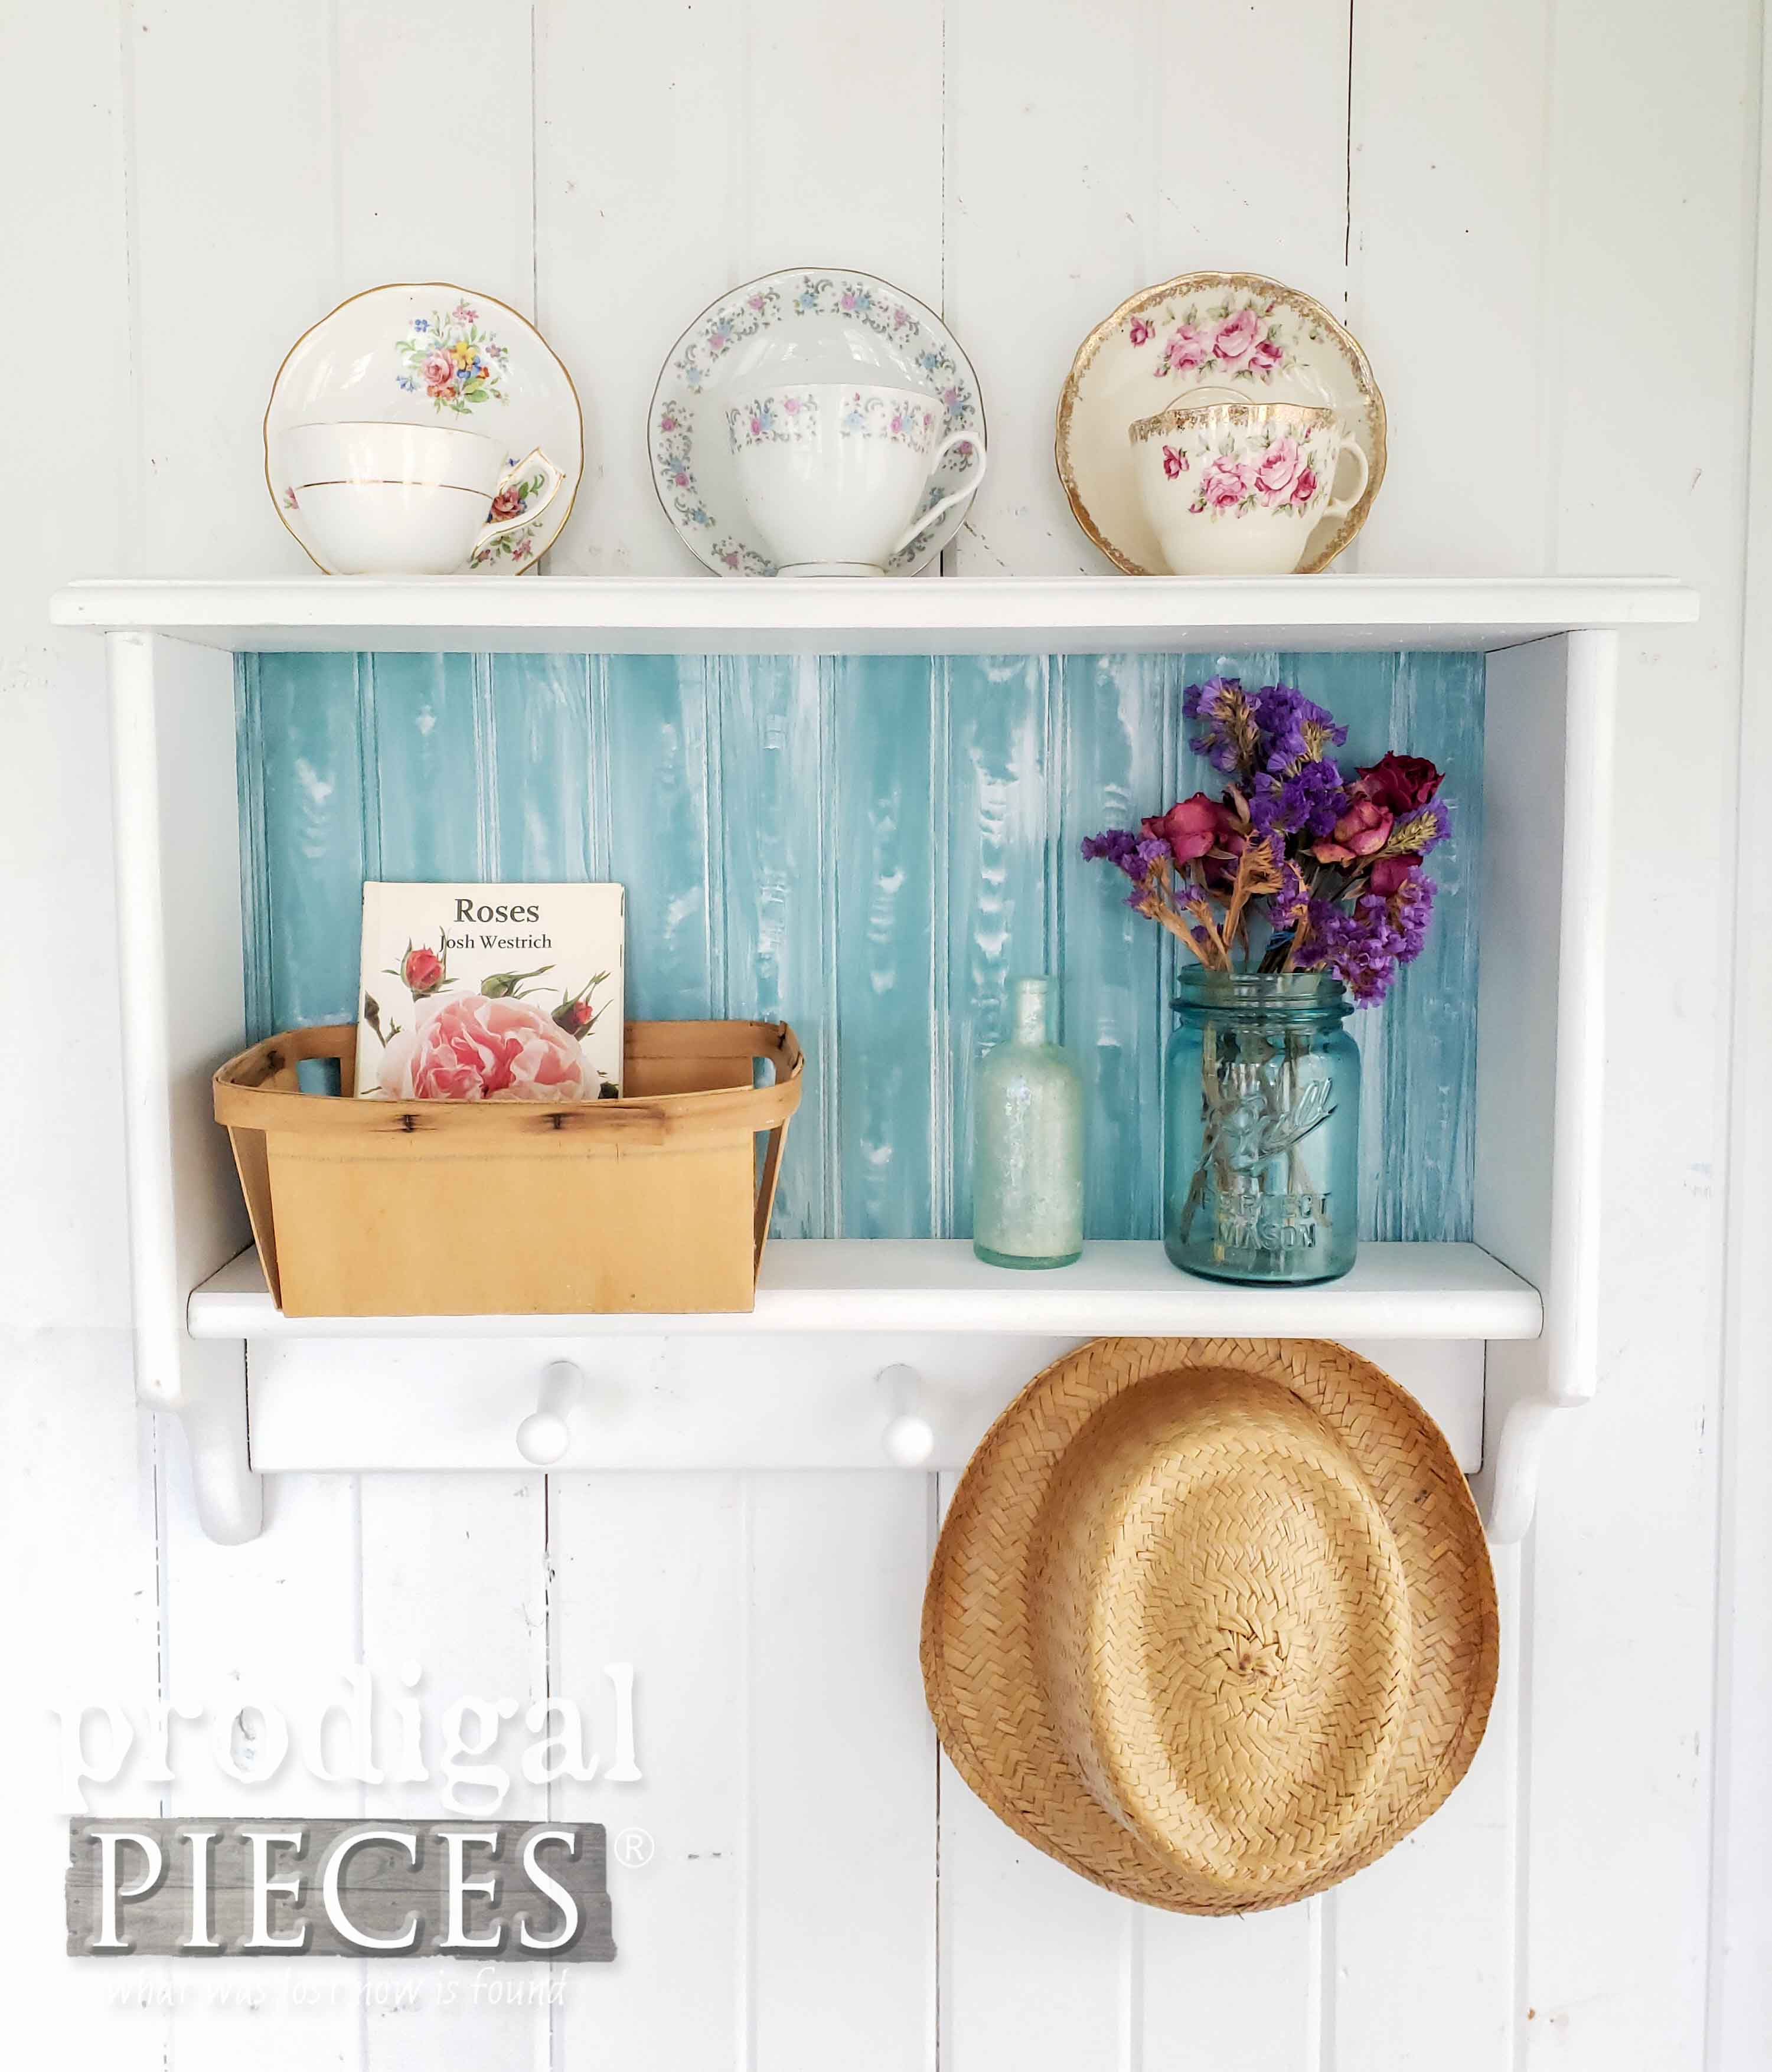 DIY Cottage Style Coat Rack from Thrifted Find by Larissa of Prodigal Pieces | prodigalpieces.com #prodigalpieces #diy #home #homedecor #cottagestyle #vintage